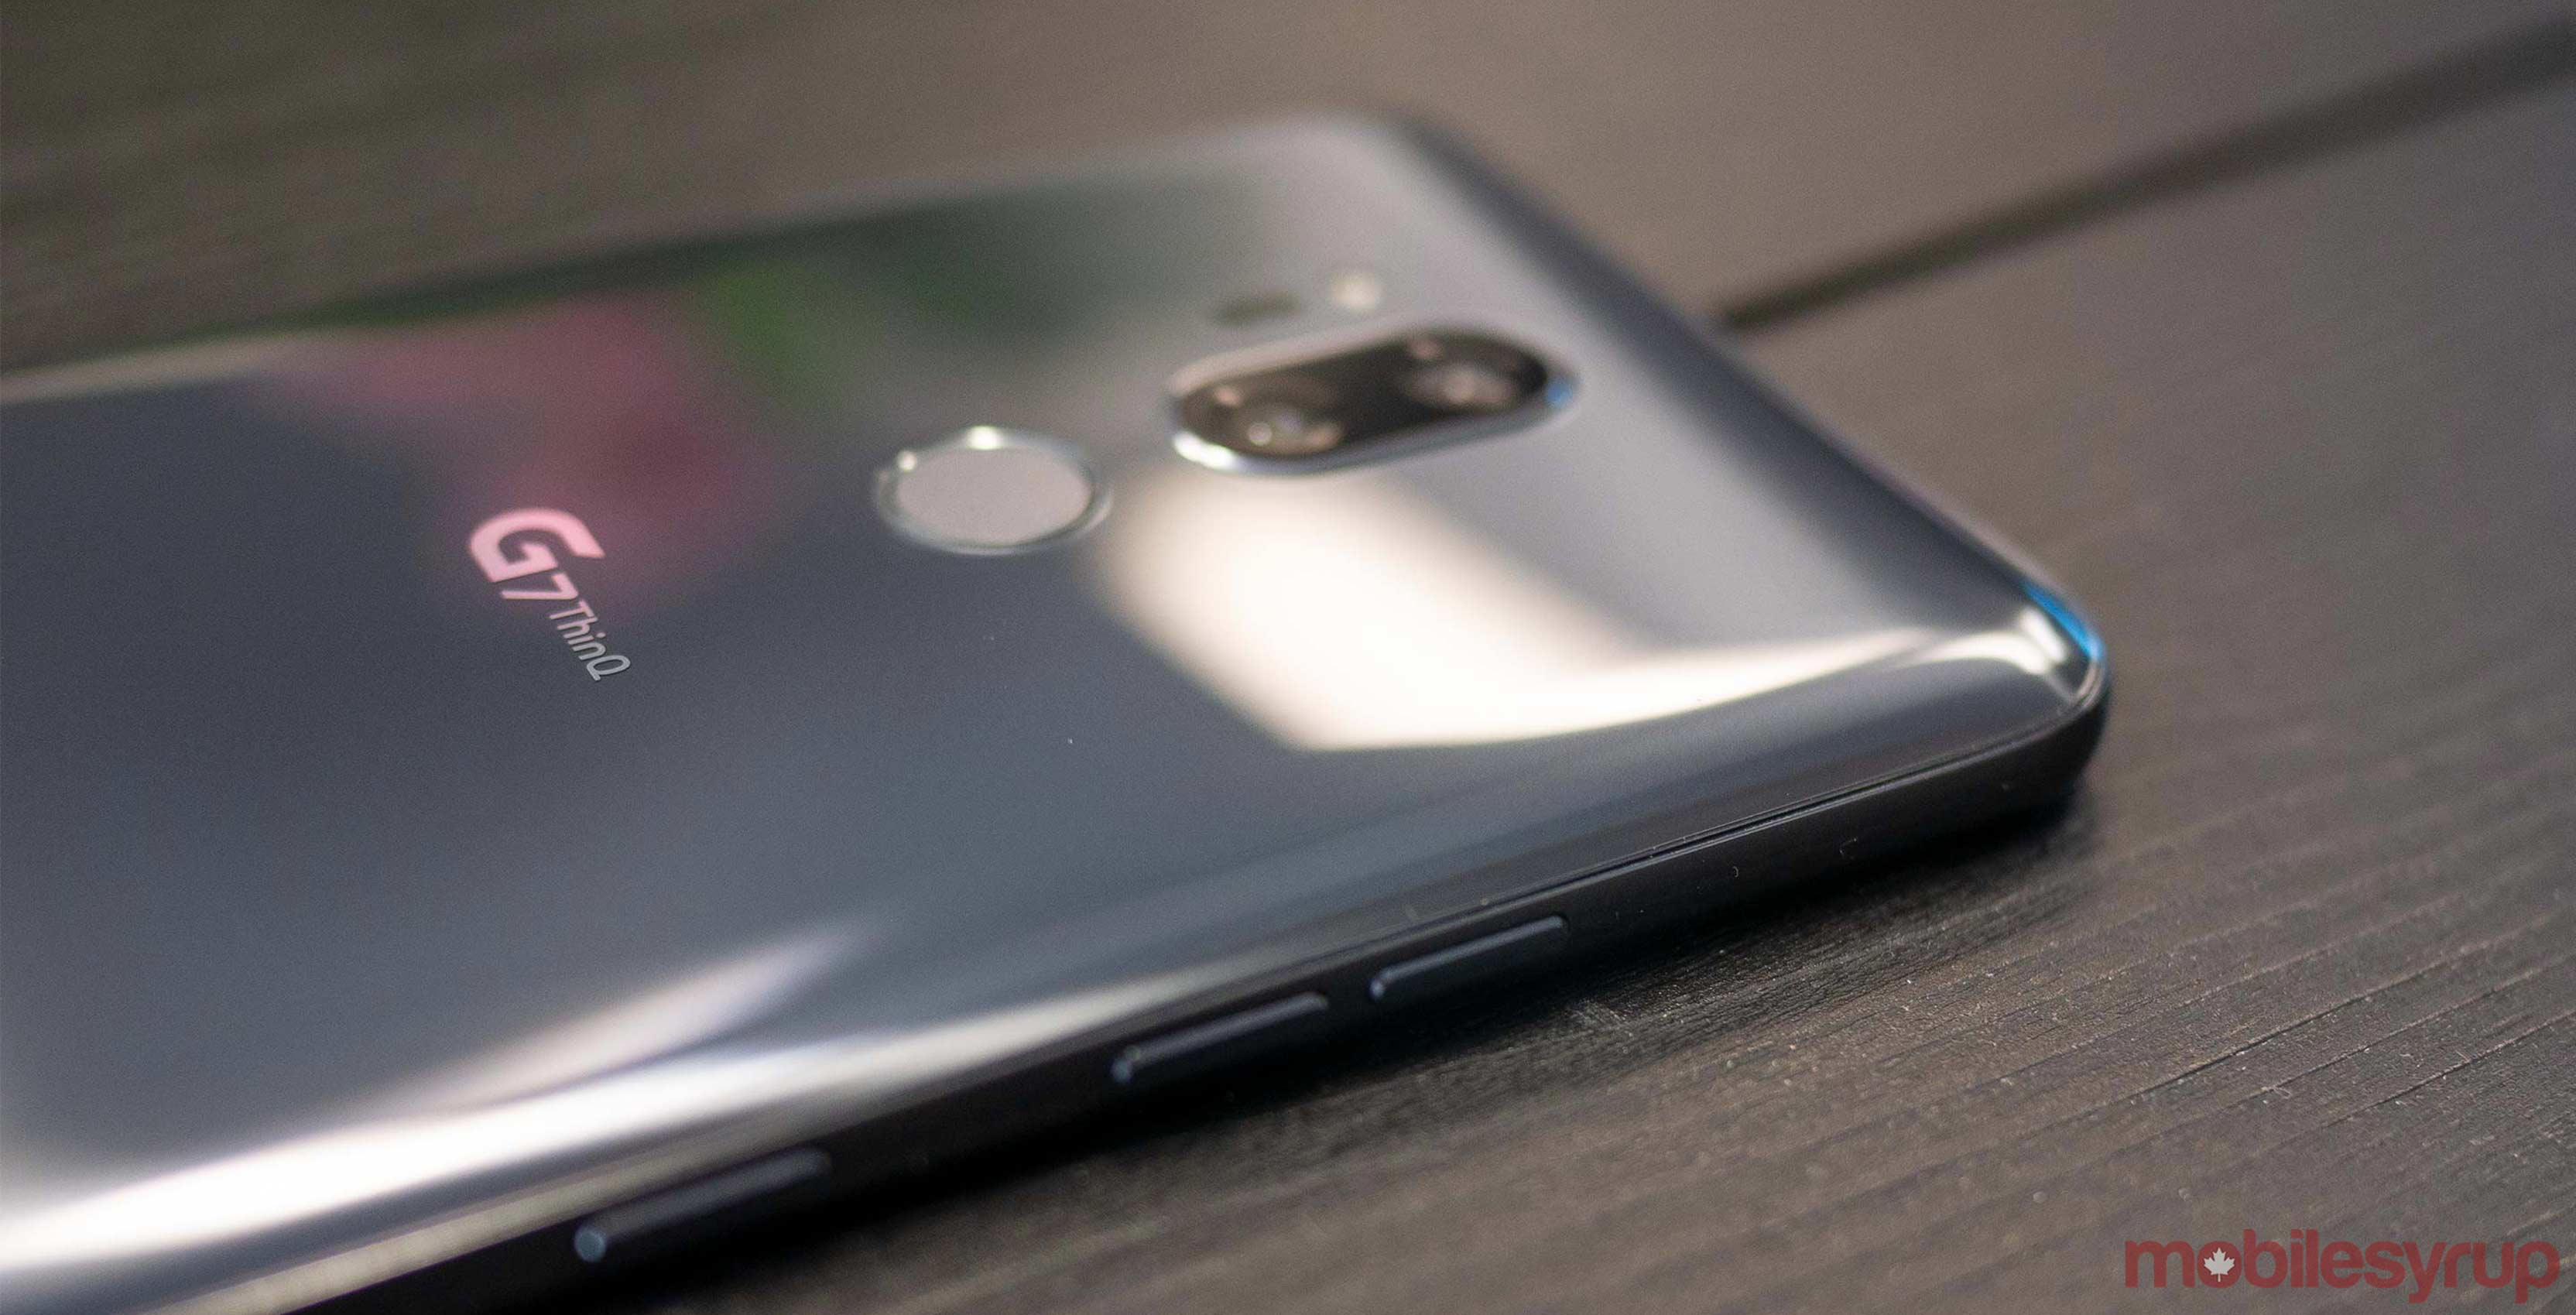 Side view of the LG G7 ThinQ